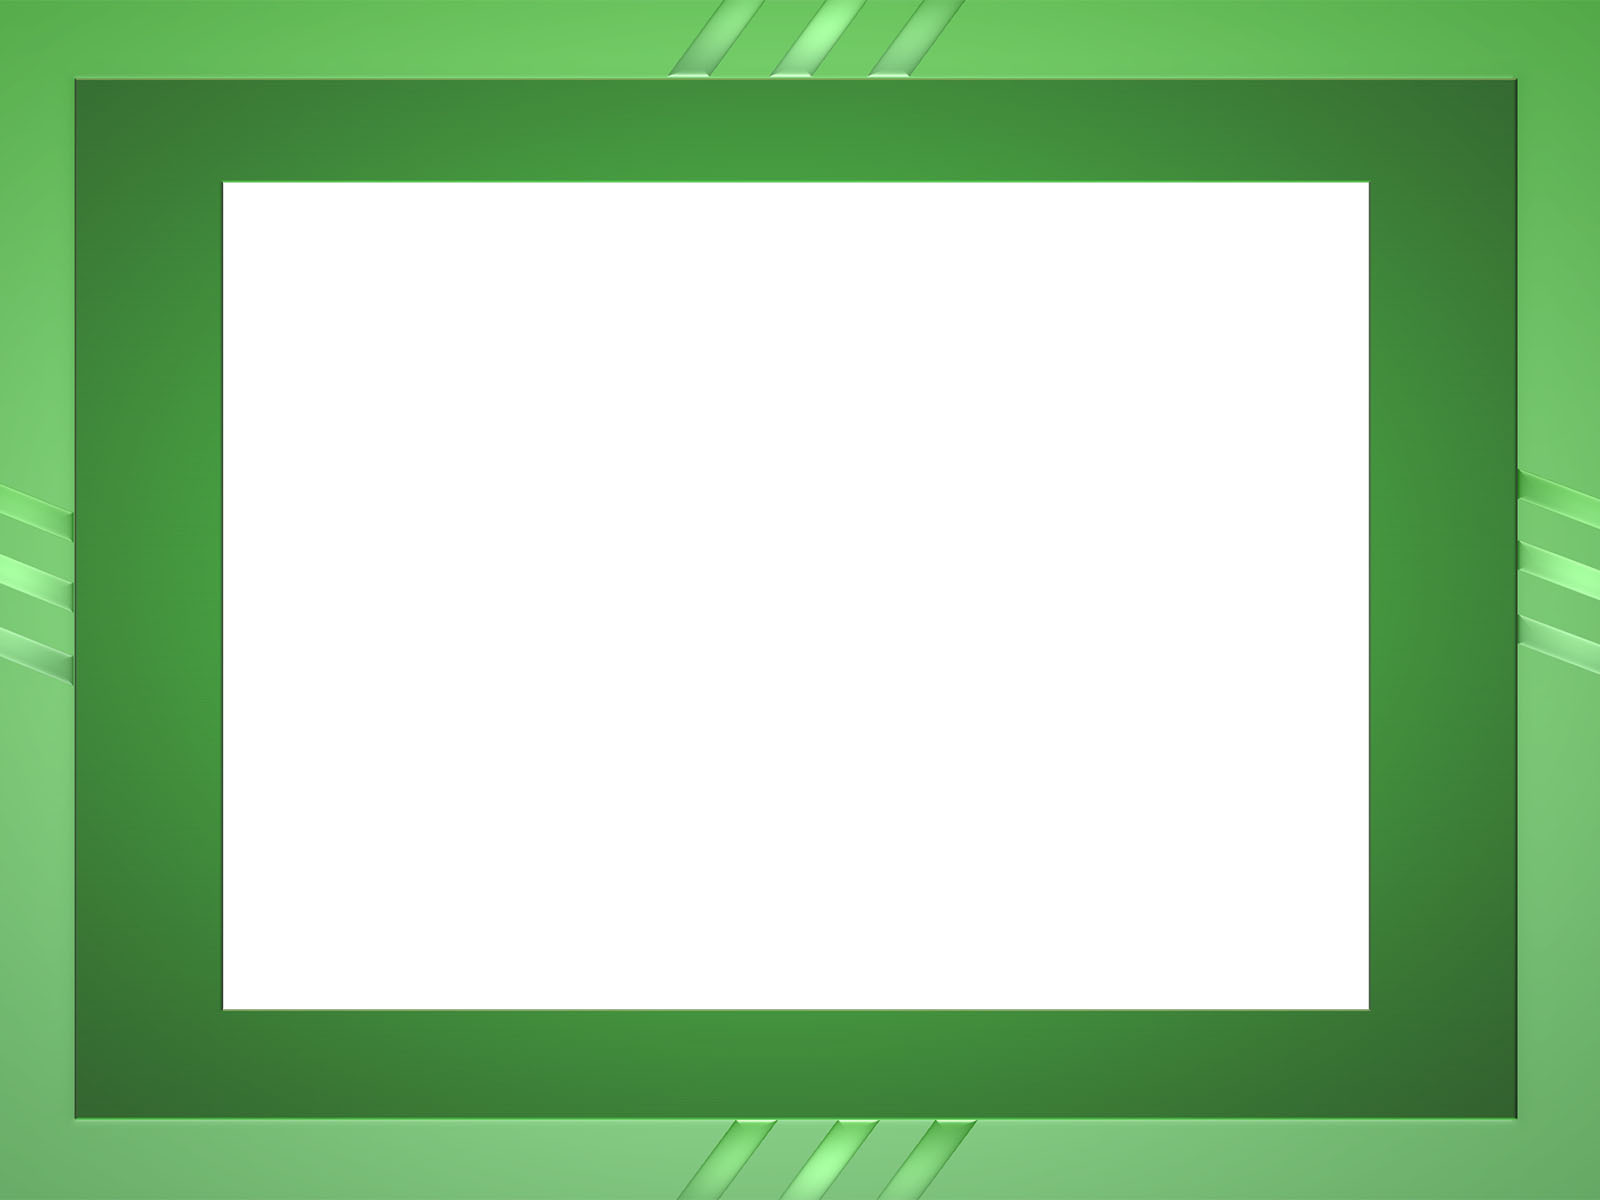 green frame backgrounds border   frames  green templates religious christmas clipart pictures religious christmas clipart free